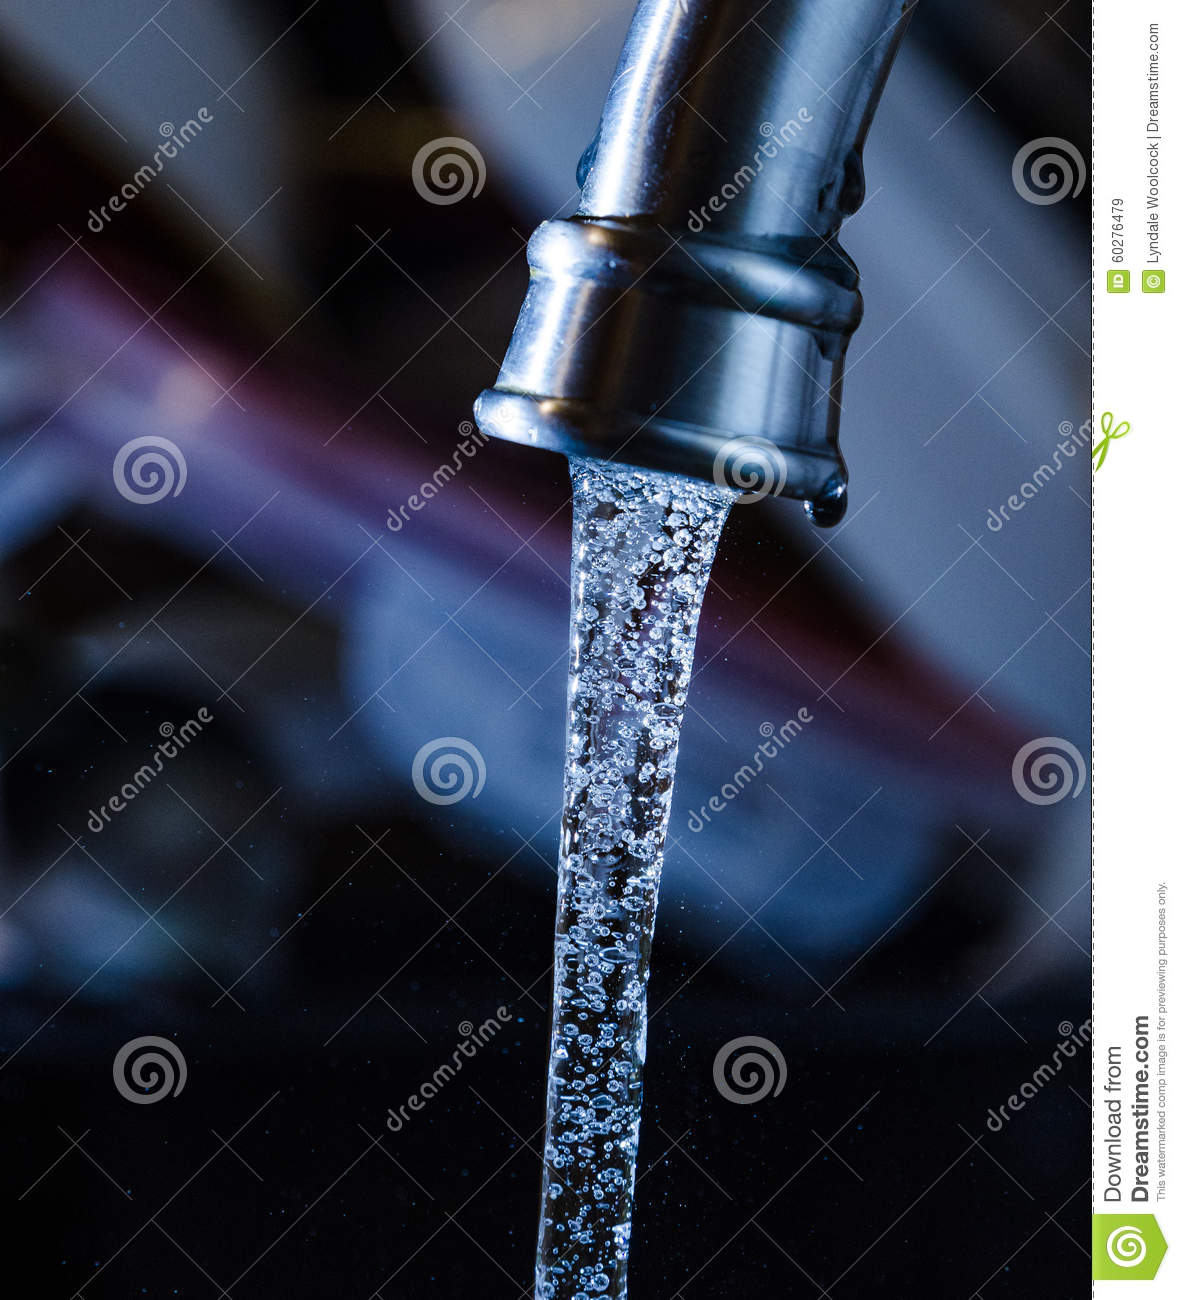 Free Flowing Water Safe To Drink